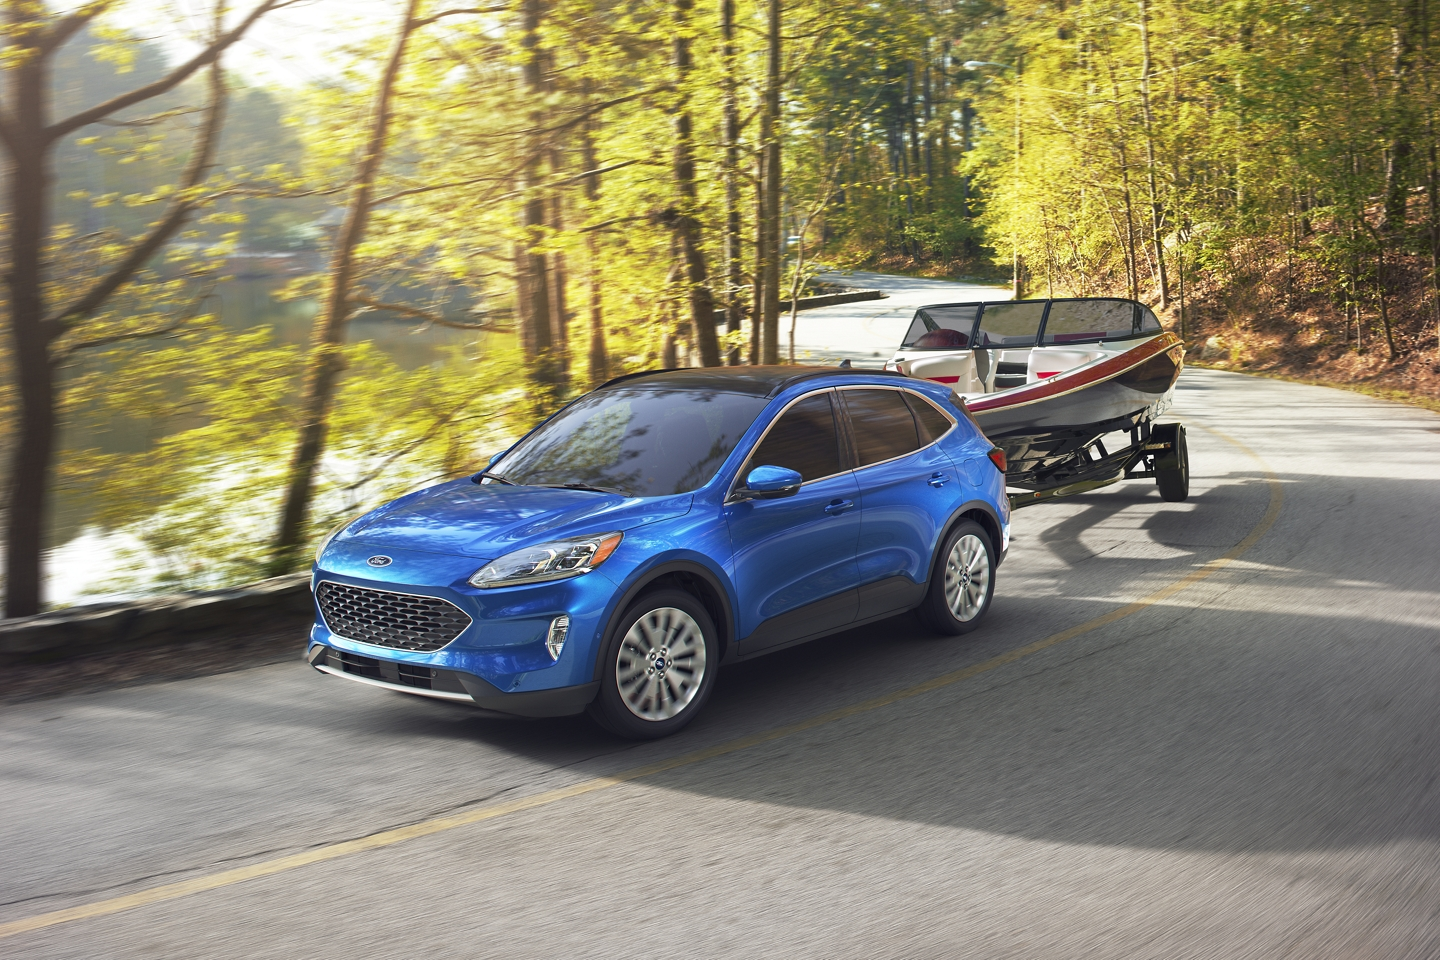 2020 Ford Escape Performance